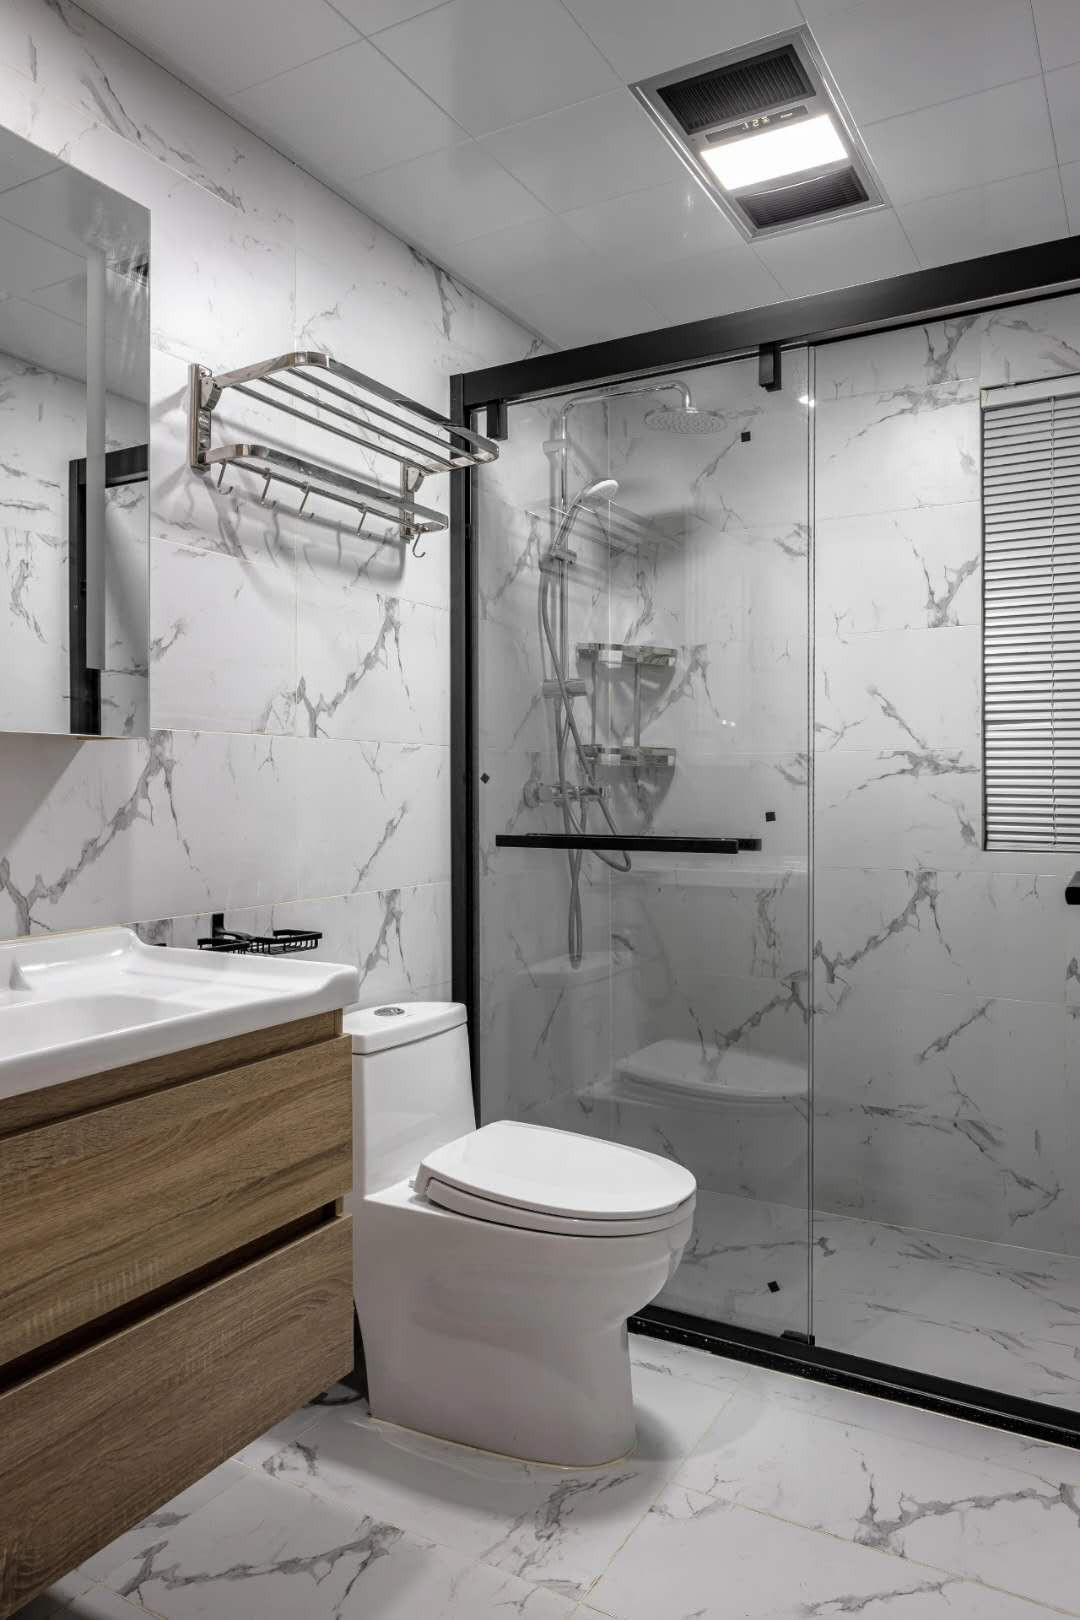 Same tile wall and floor style with shower glass partition